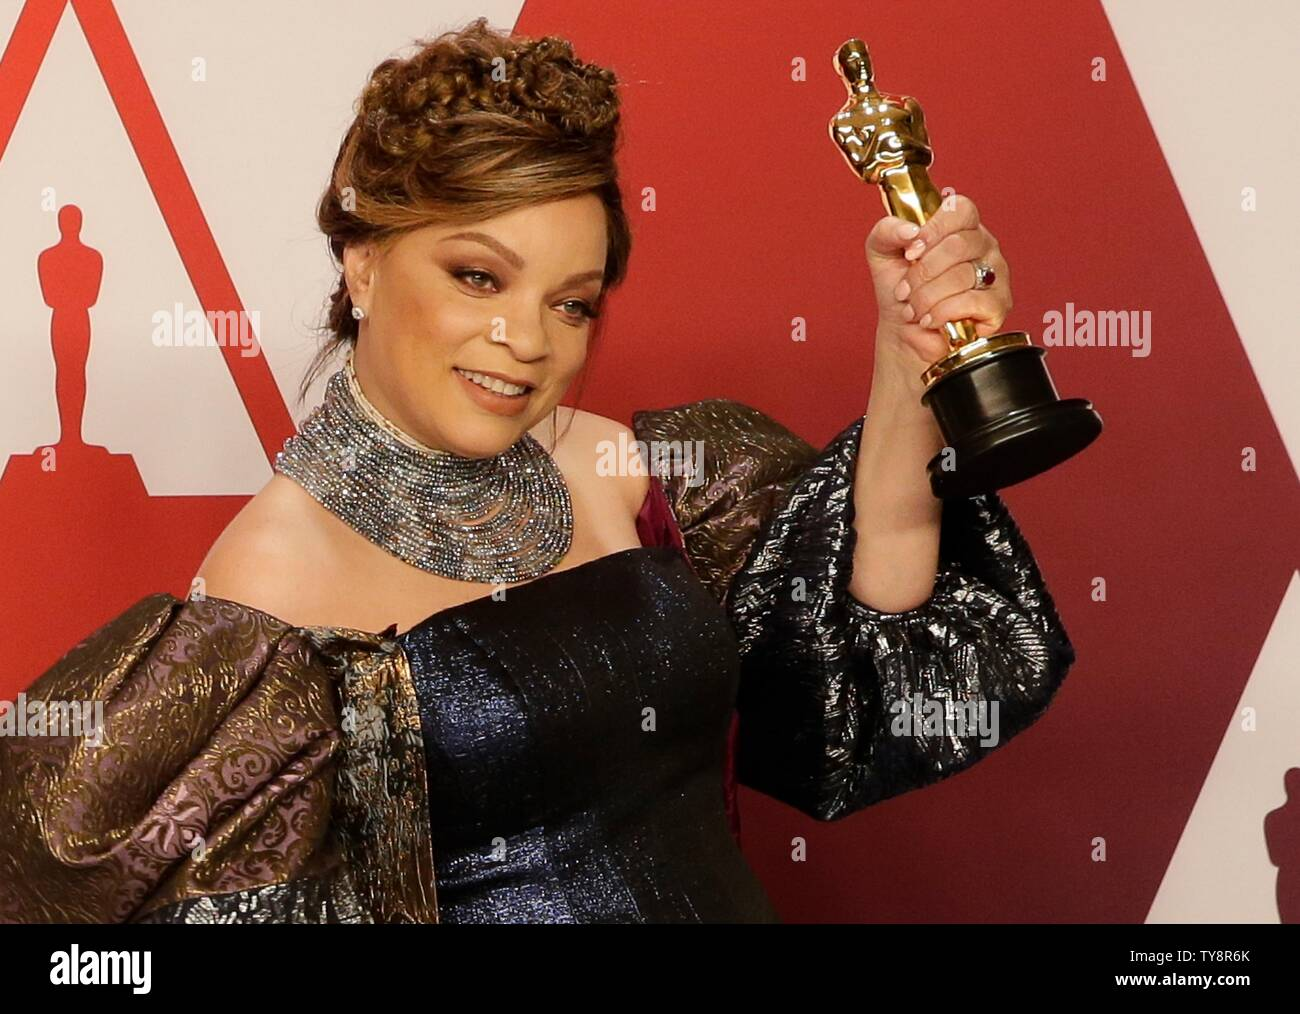 Ruth E Carter Winner Of The Award For Best Costume Design For Black Panther Appears Backstage With His Oscar During The 91st Annual Academy Awards At Loews Hollywood Hotel In The Hollywood